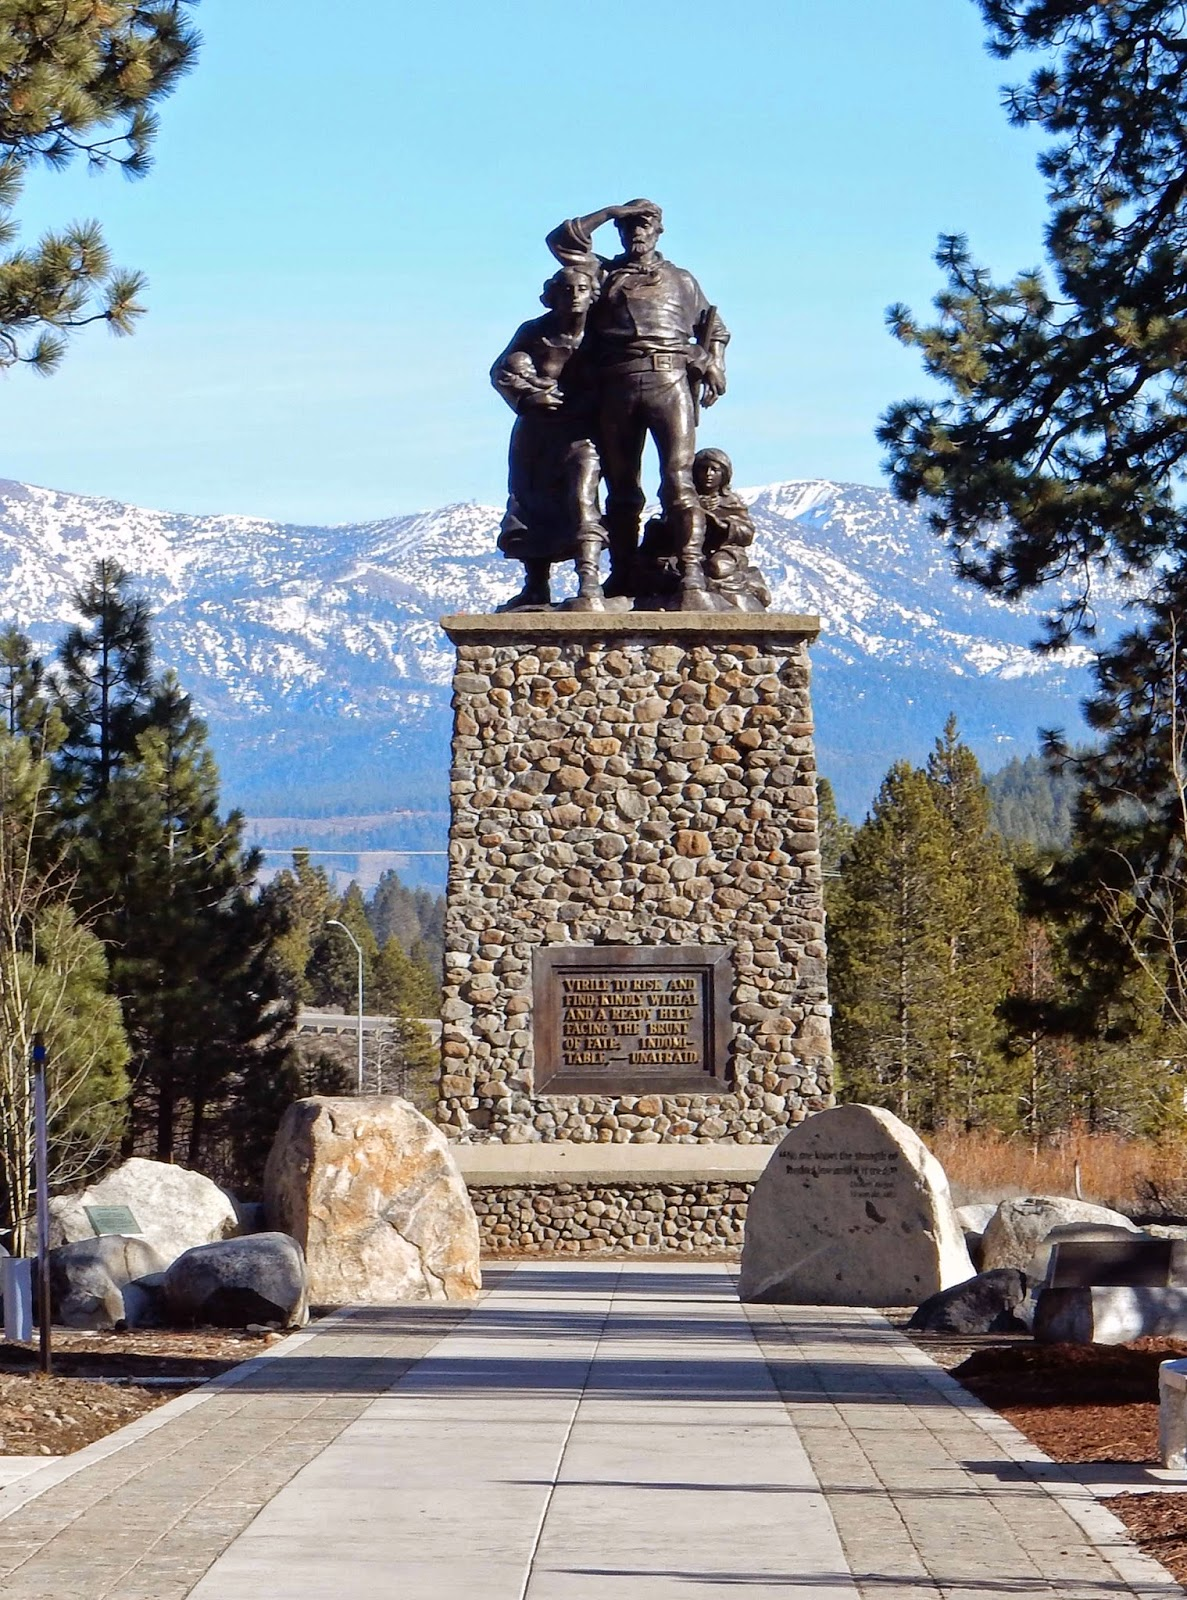 Used 2015 Tahoe >> Tahoe Truckee Outdoor: New Donner Lake Museum may open in 2015